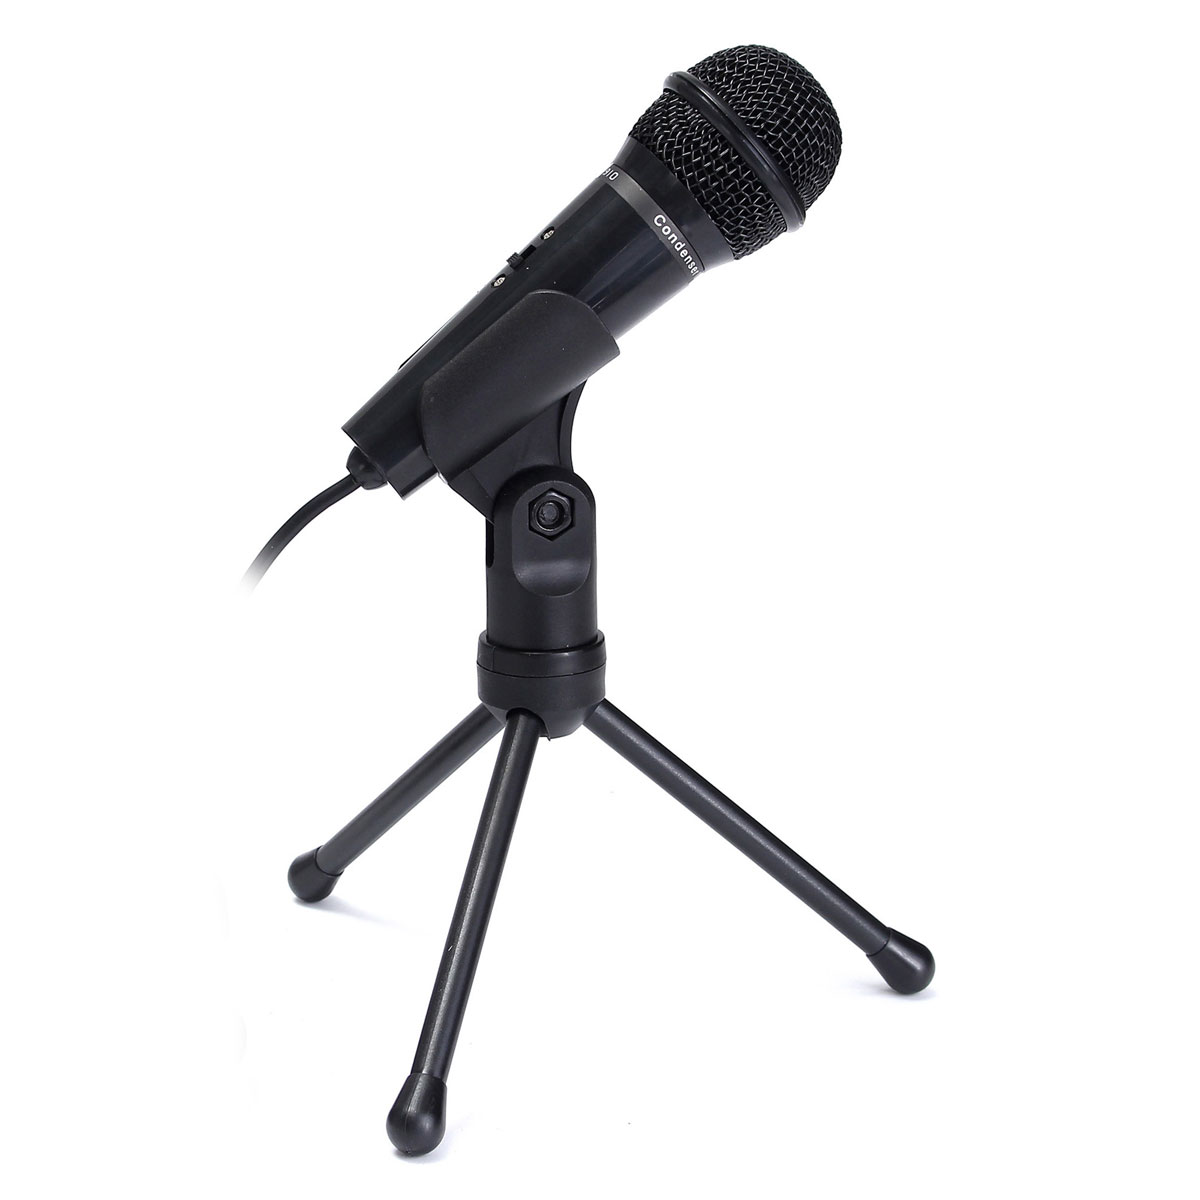 new hot sale condenser microphone recording mic with stand for pc laptop desktop computers. Black Bedroom Furniture Sets. Home Design Ideas